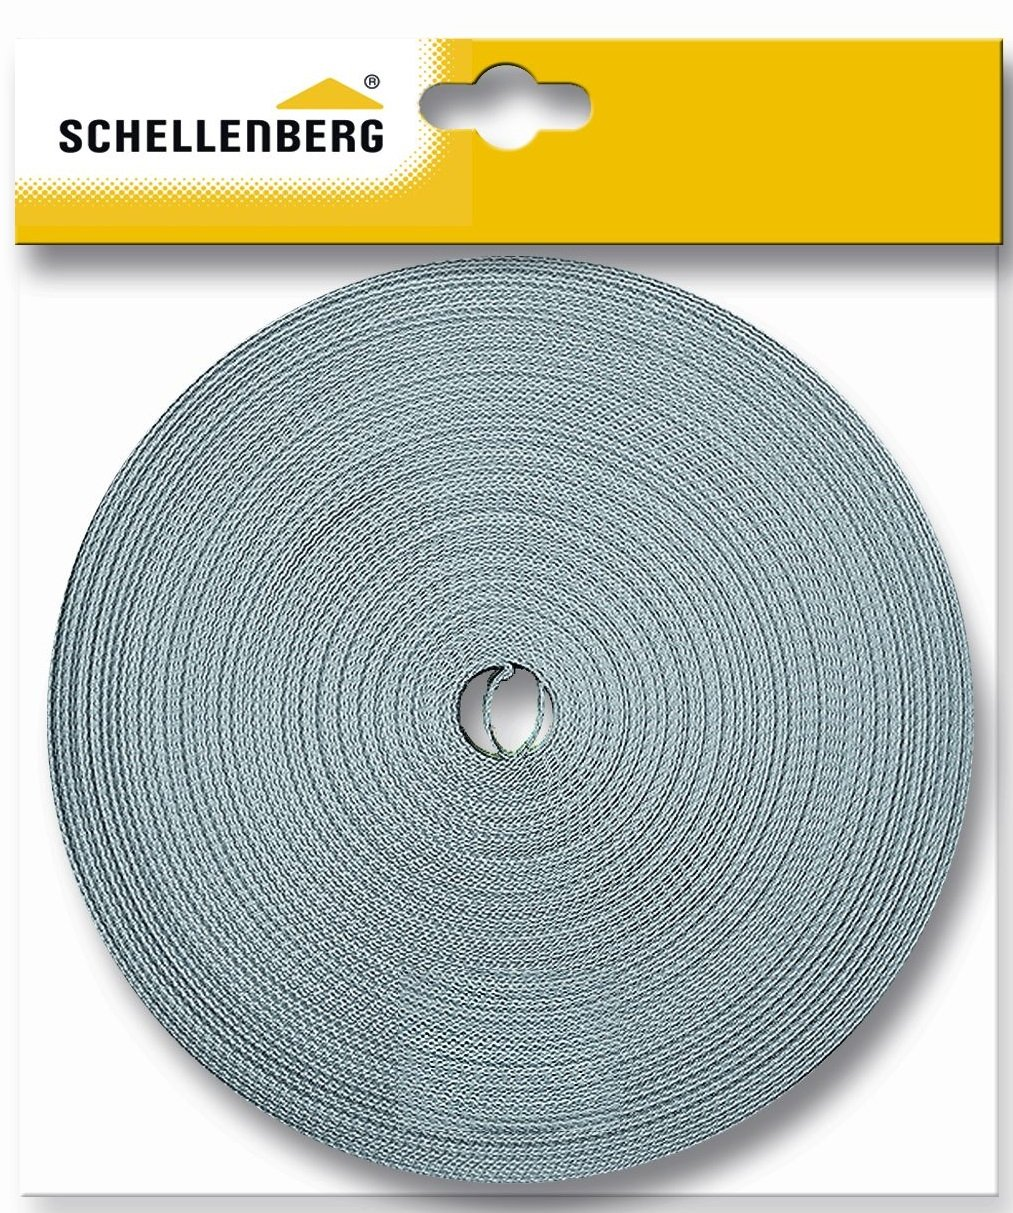 Schellenberg 81202 - Correa de persiana (18 mm, 12 m), color gris